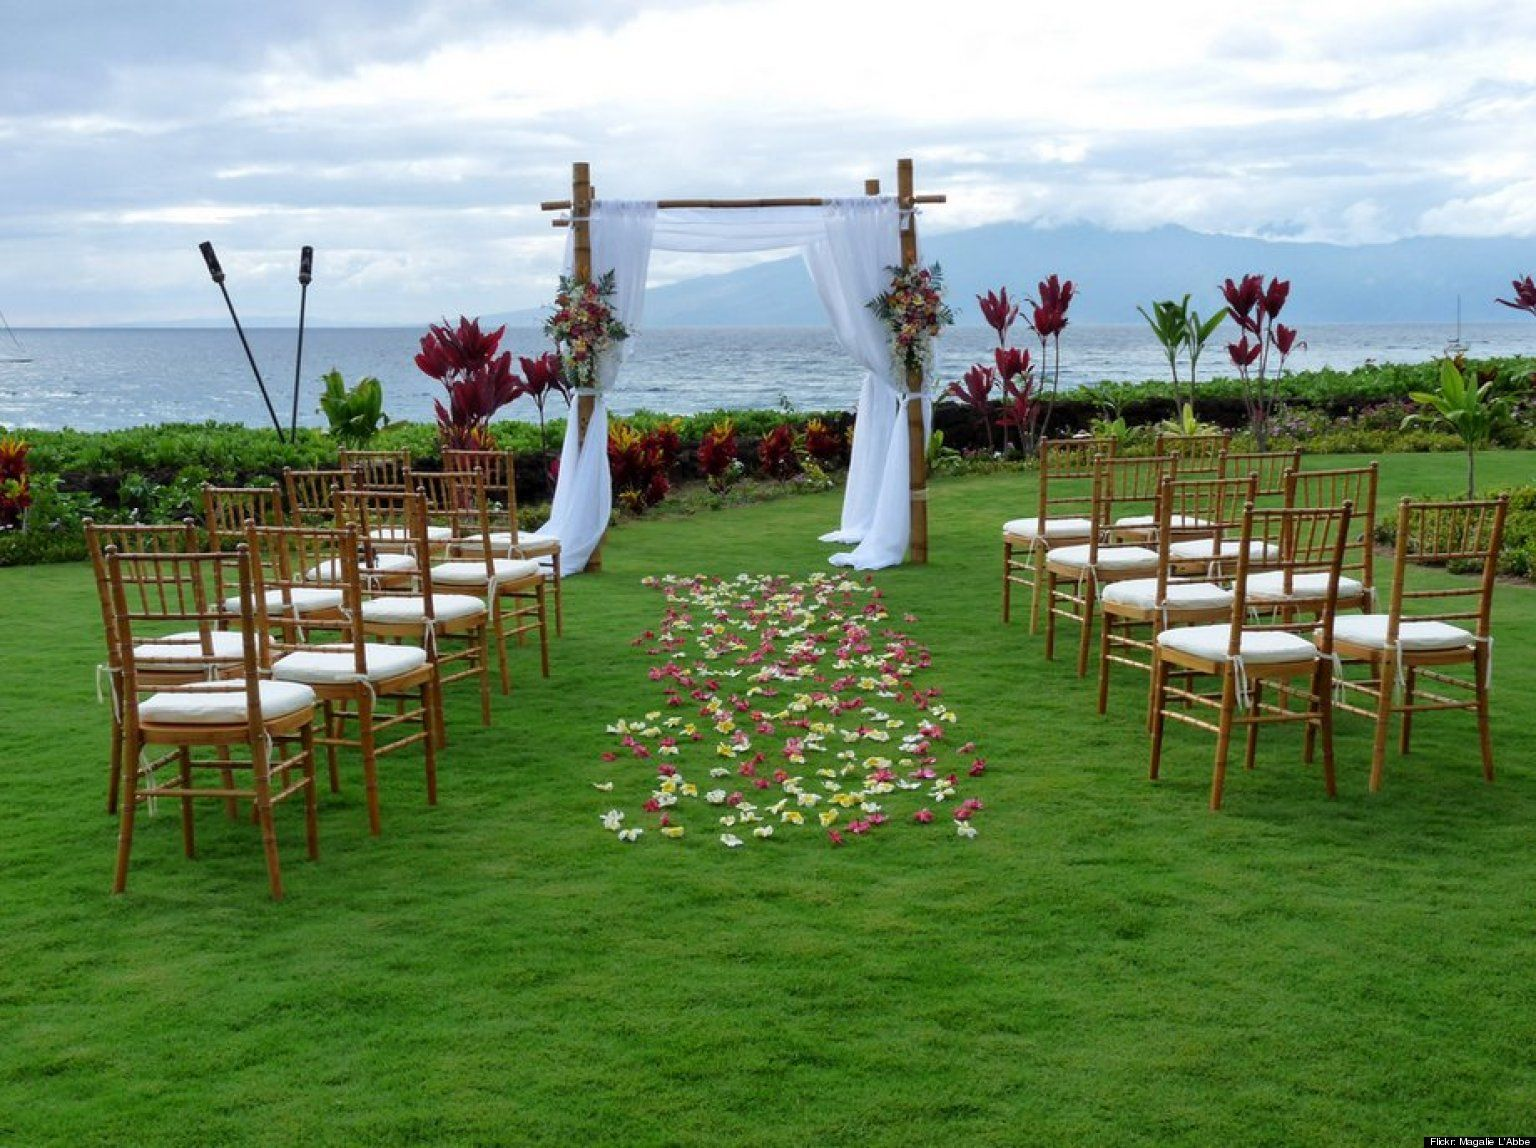 Pin by Events Delight on Ceremony decor | Pinterest